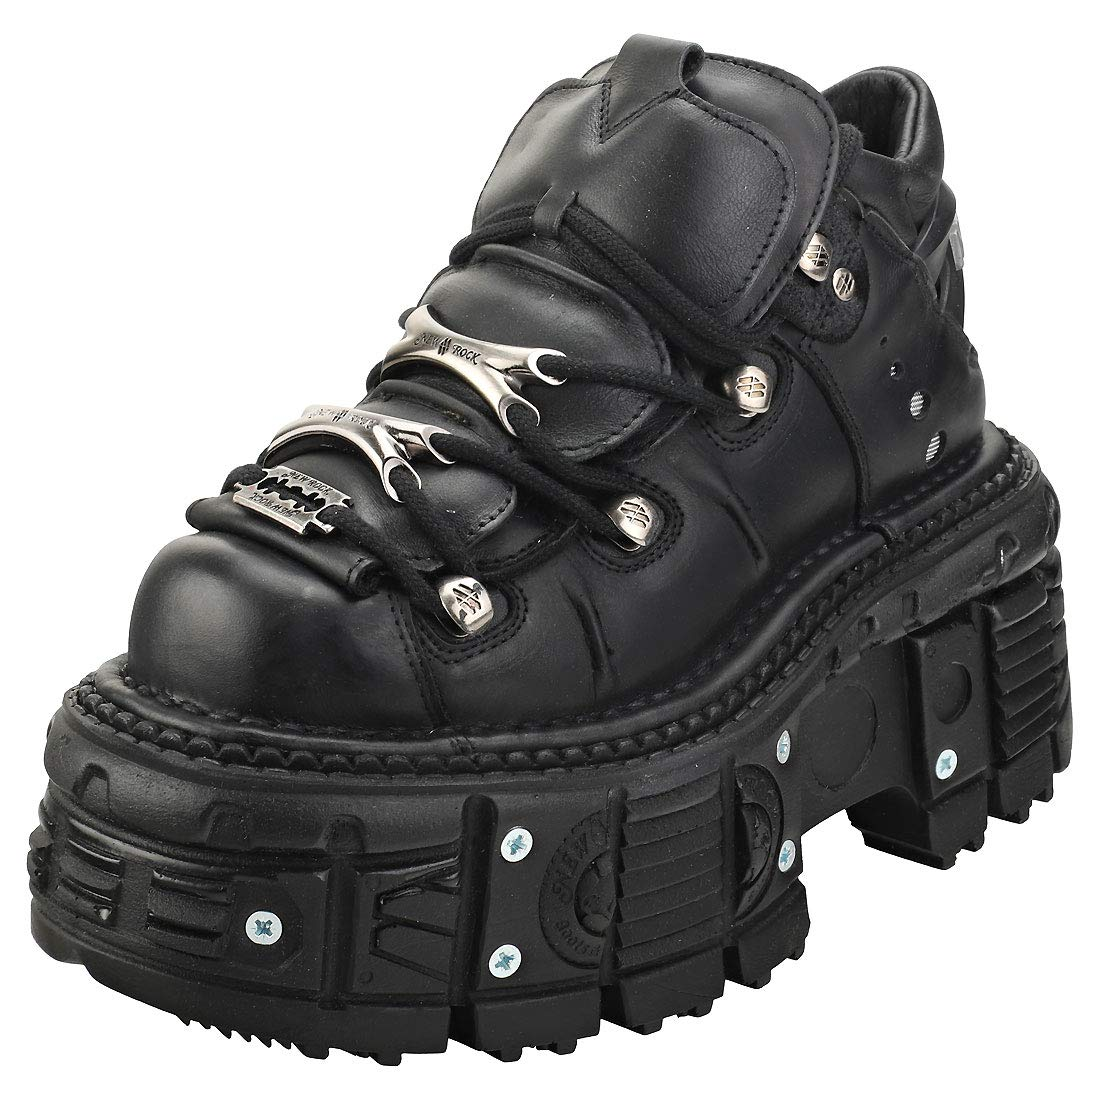 NEW ROCK M.106-S29 TOWER SHOES Metallic Black Leather Biker Gothic Boots